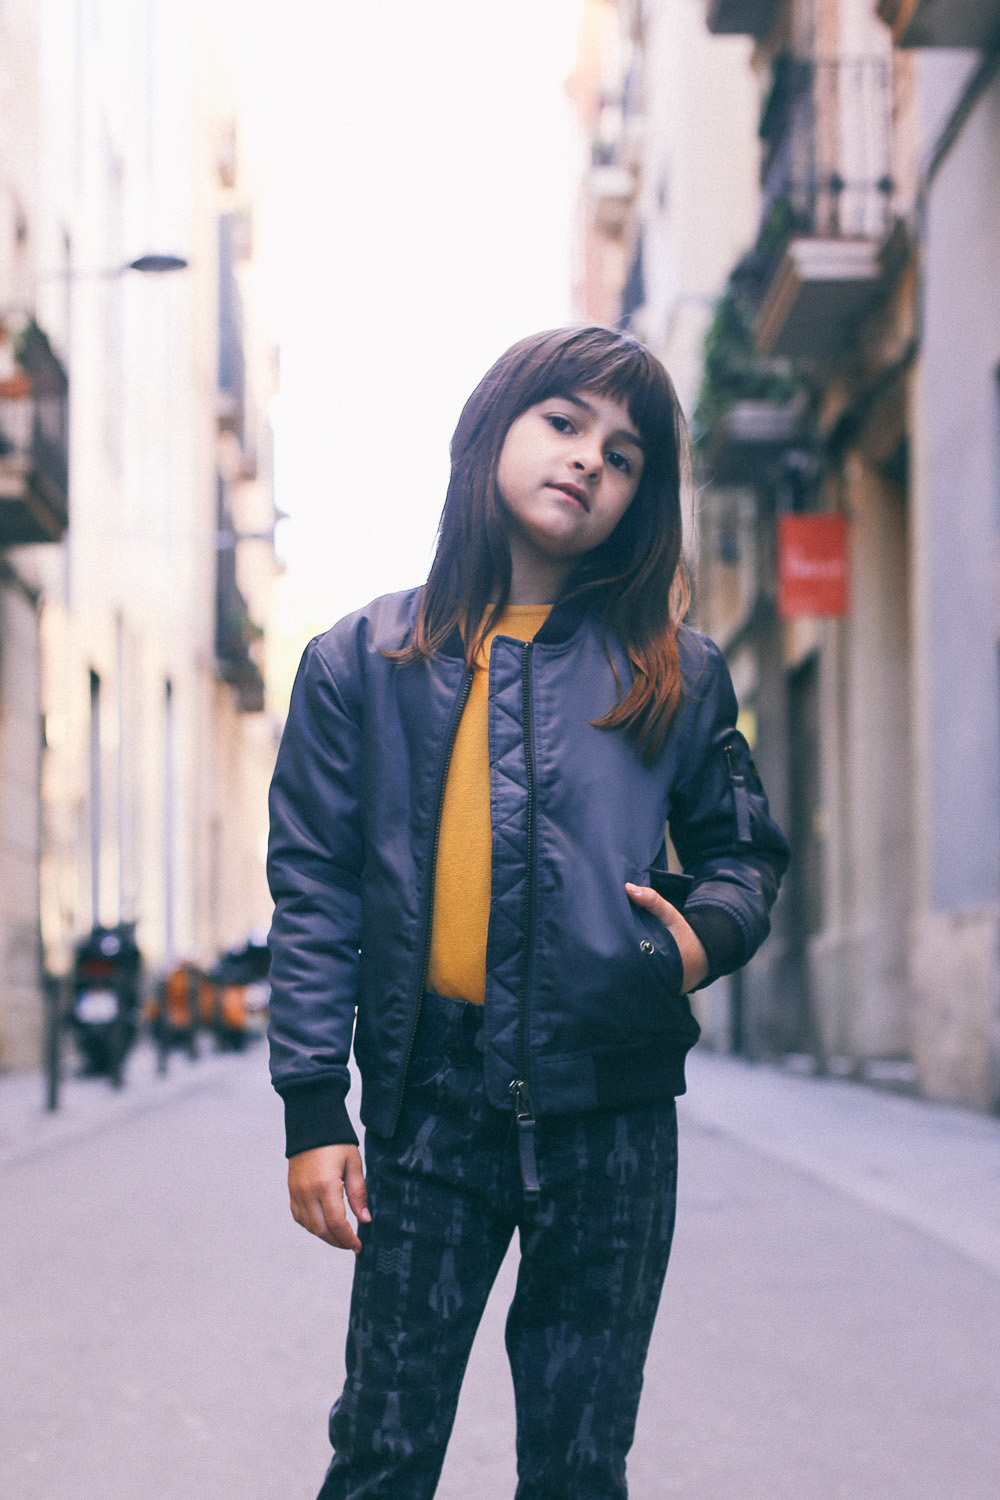 finger-in-the-nose-kids-fashion-moda-barcelona-street-style-IMG_0885